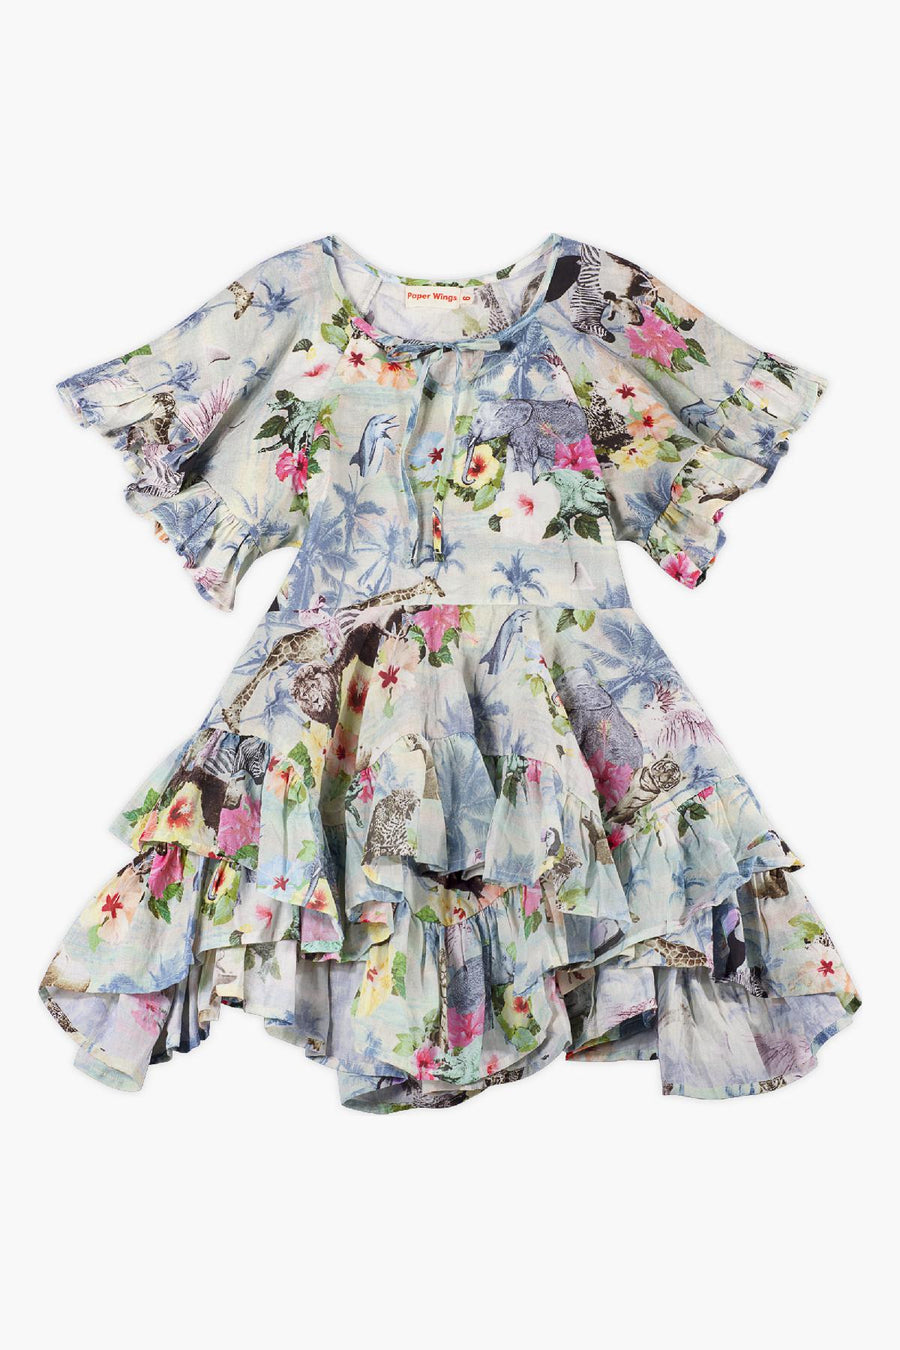 Paper Wings Hawaiian Print Girls Dress